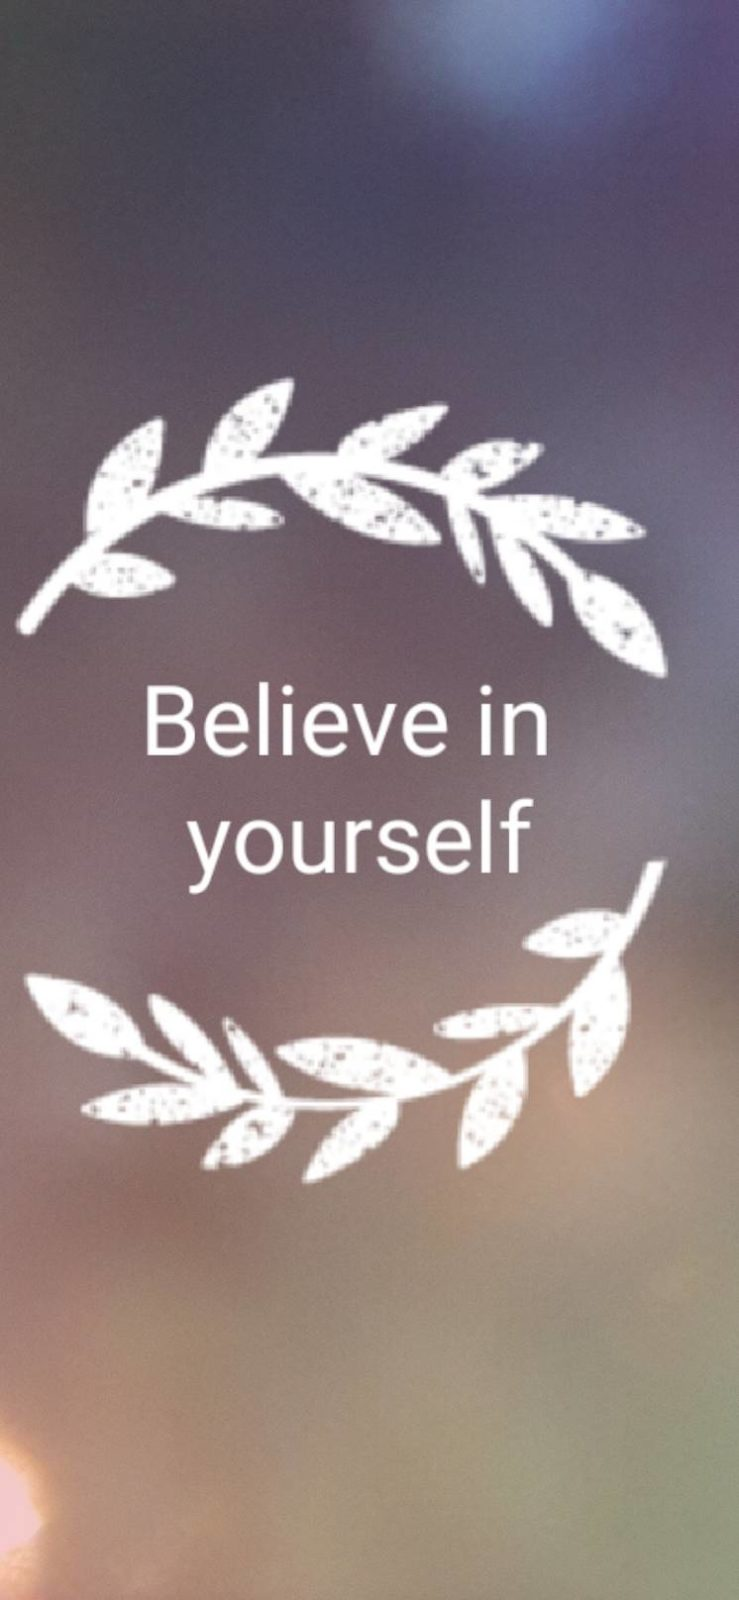 Motivational Wallpapers hd For Mobiles 4 1